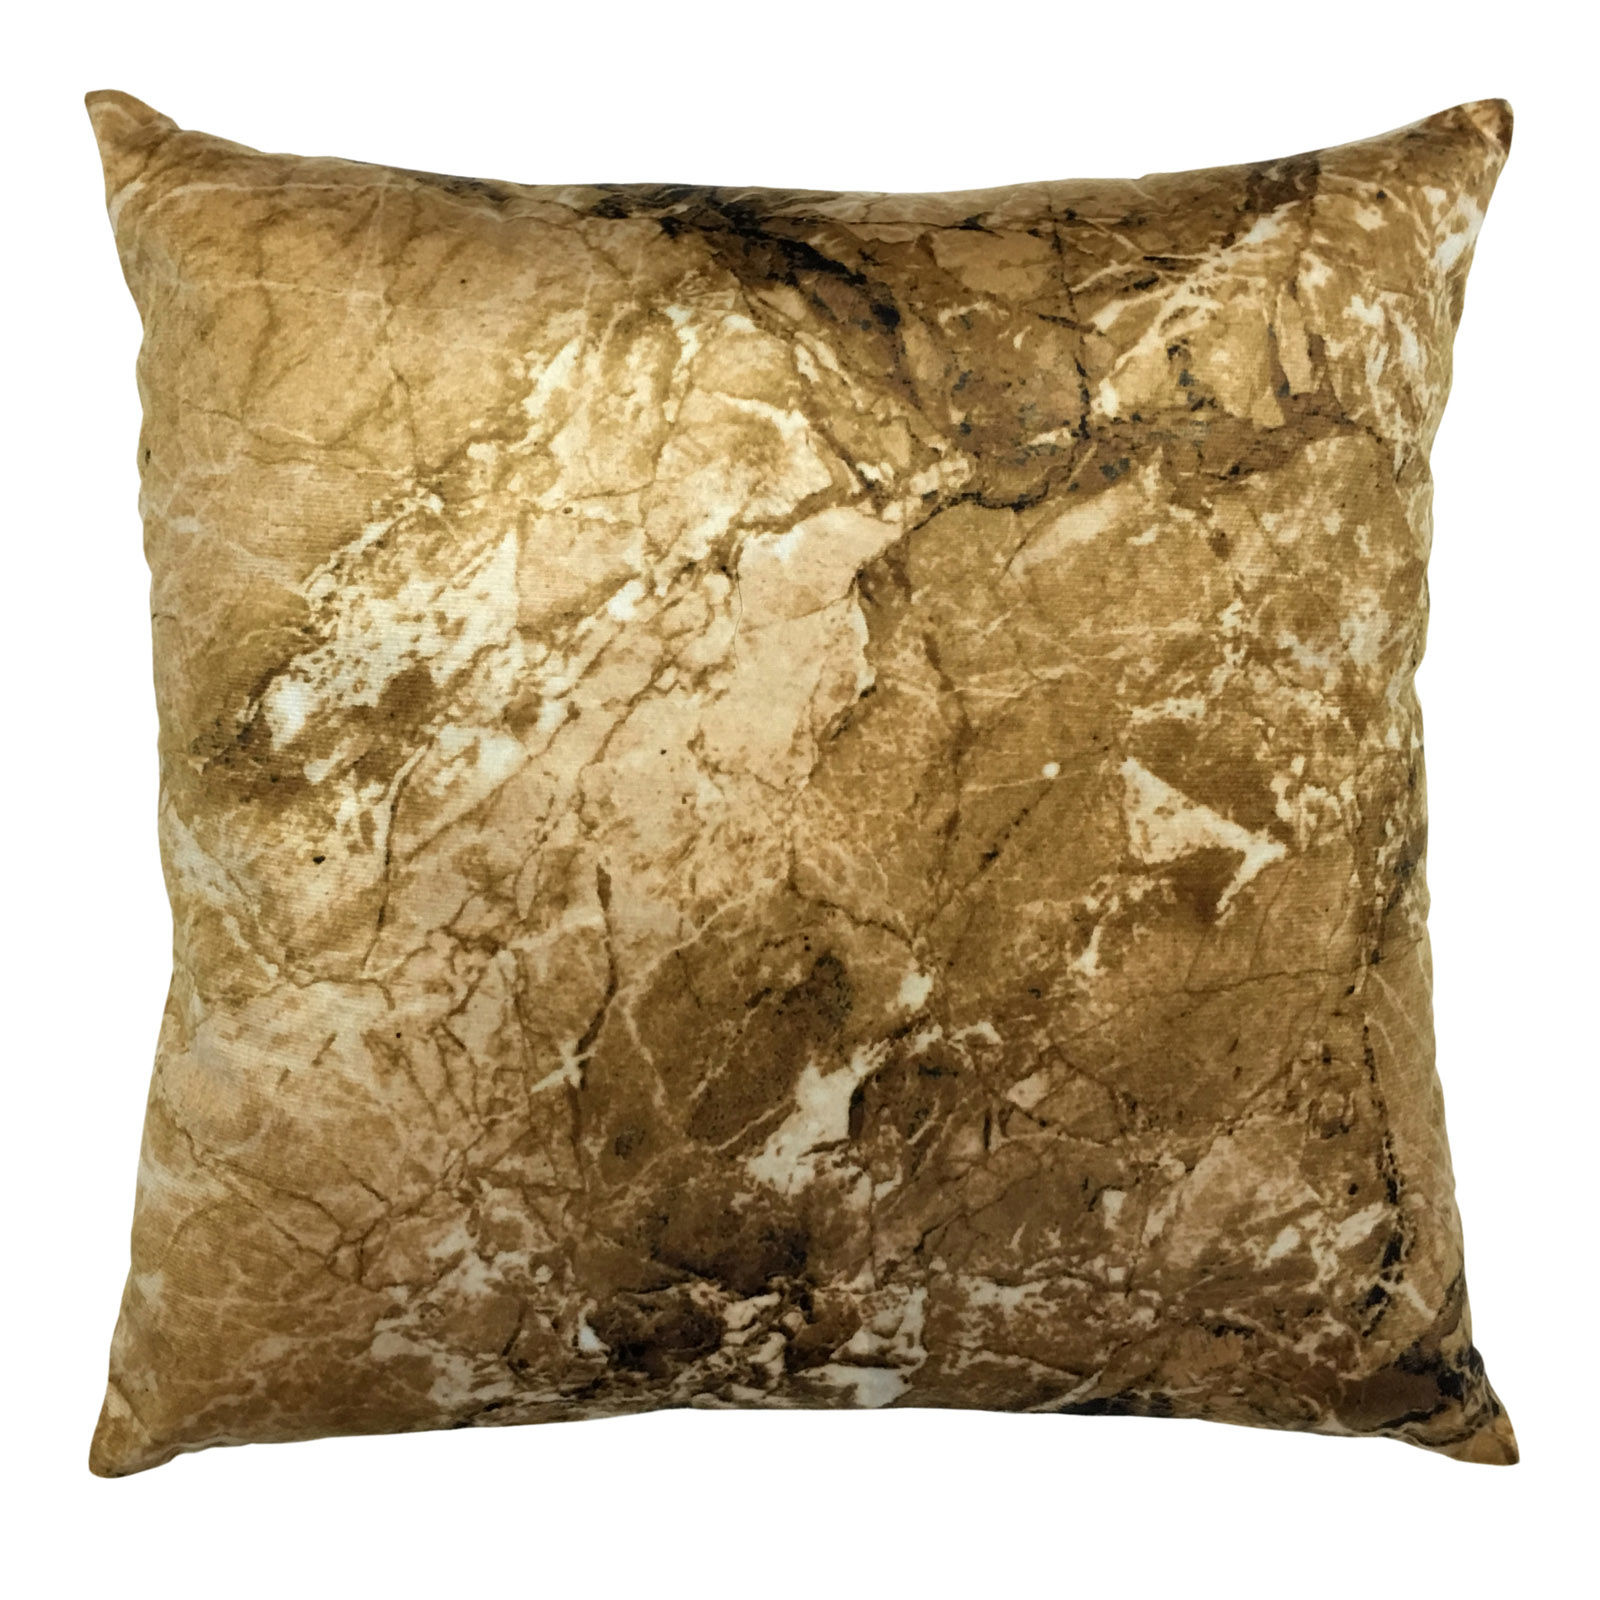 Bed pillows decorative - Throw Pillows For Bed Modern Throw Pillows Gold Throw Pillows